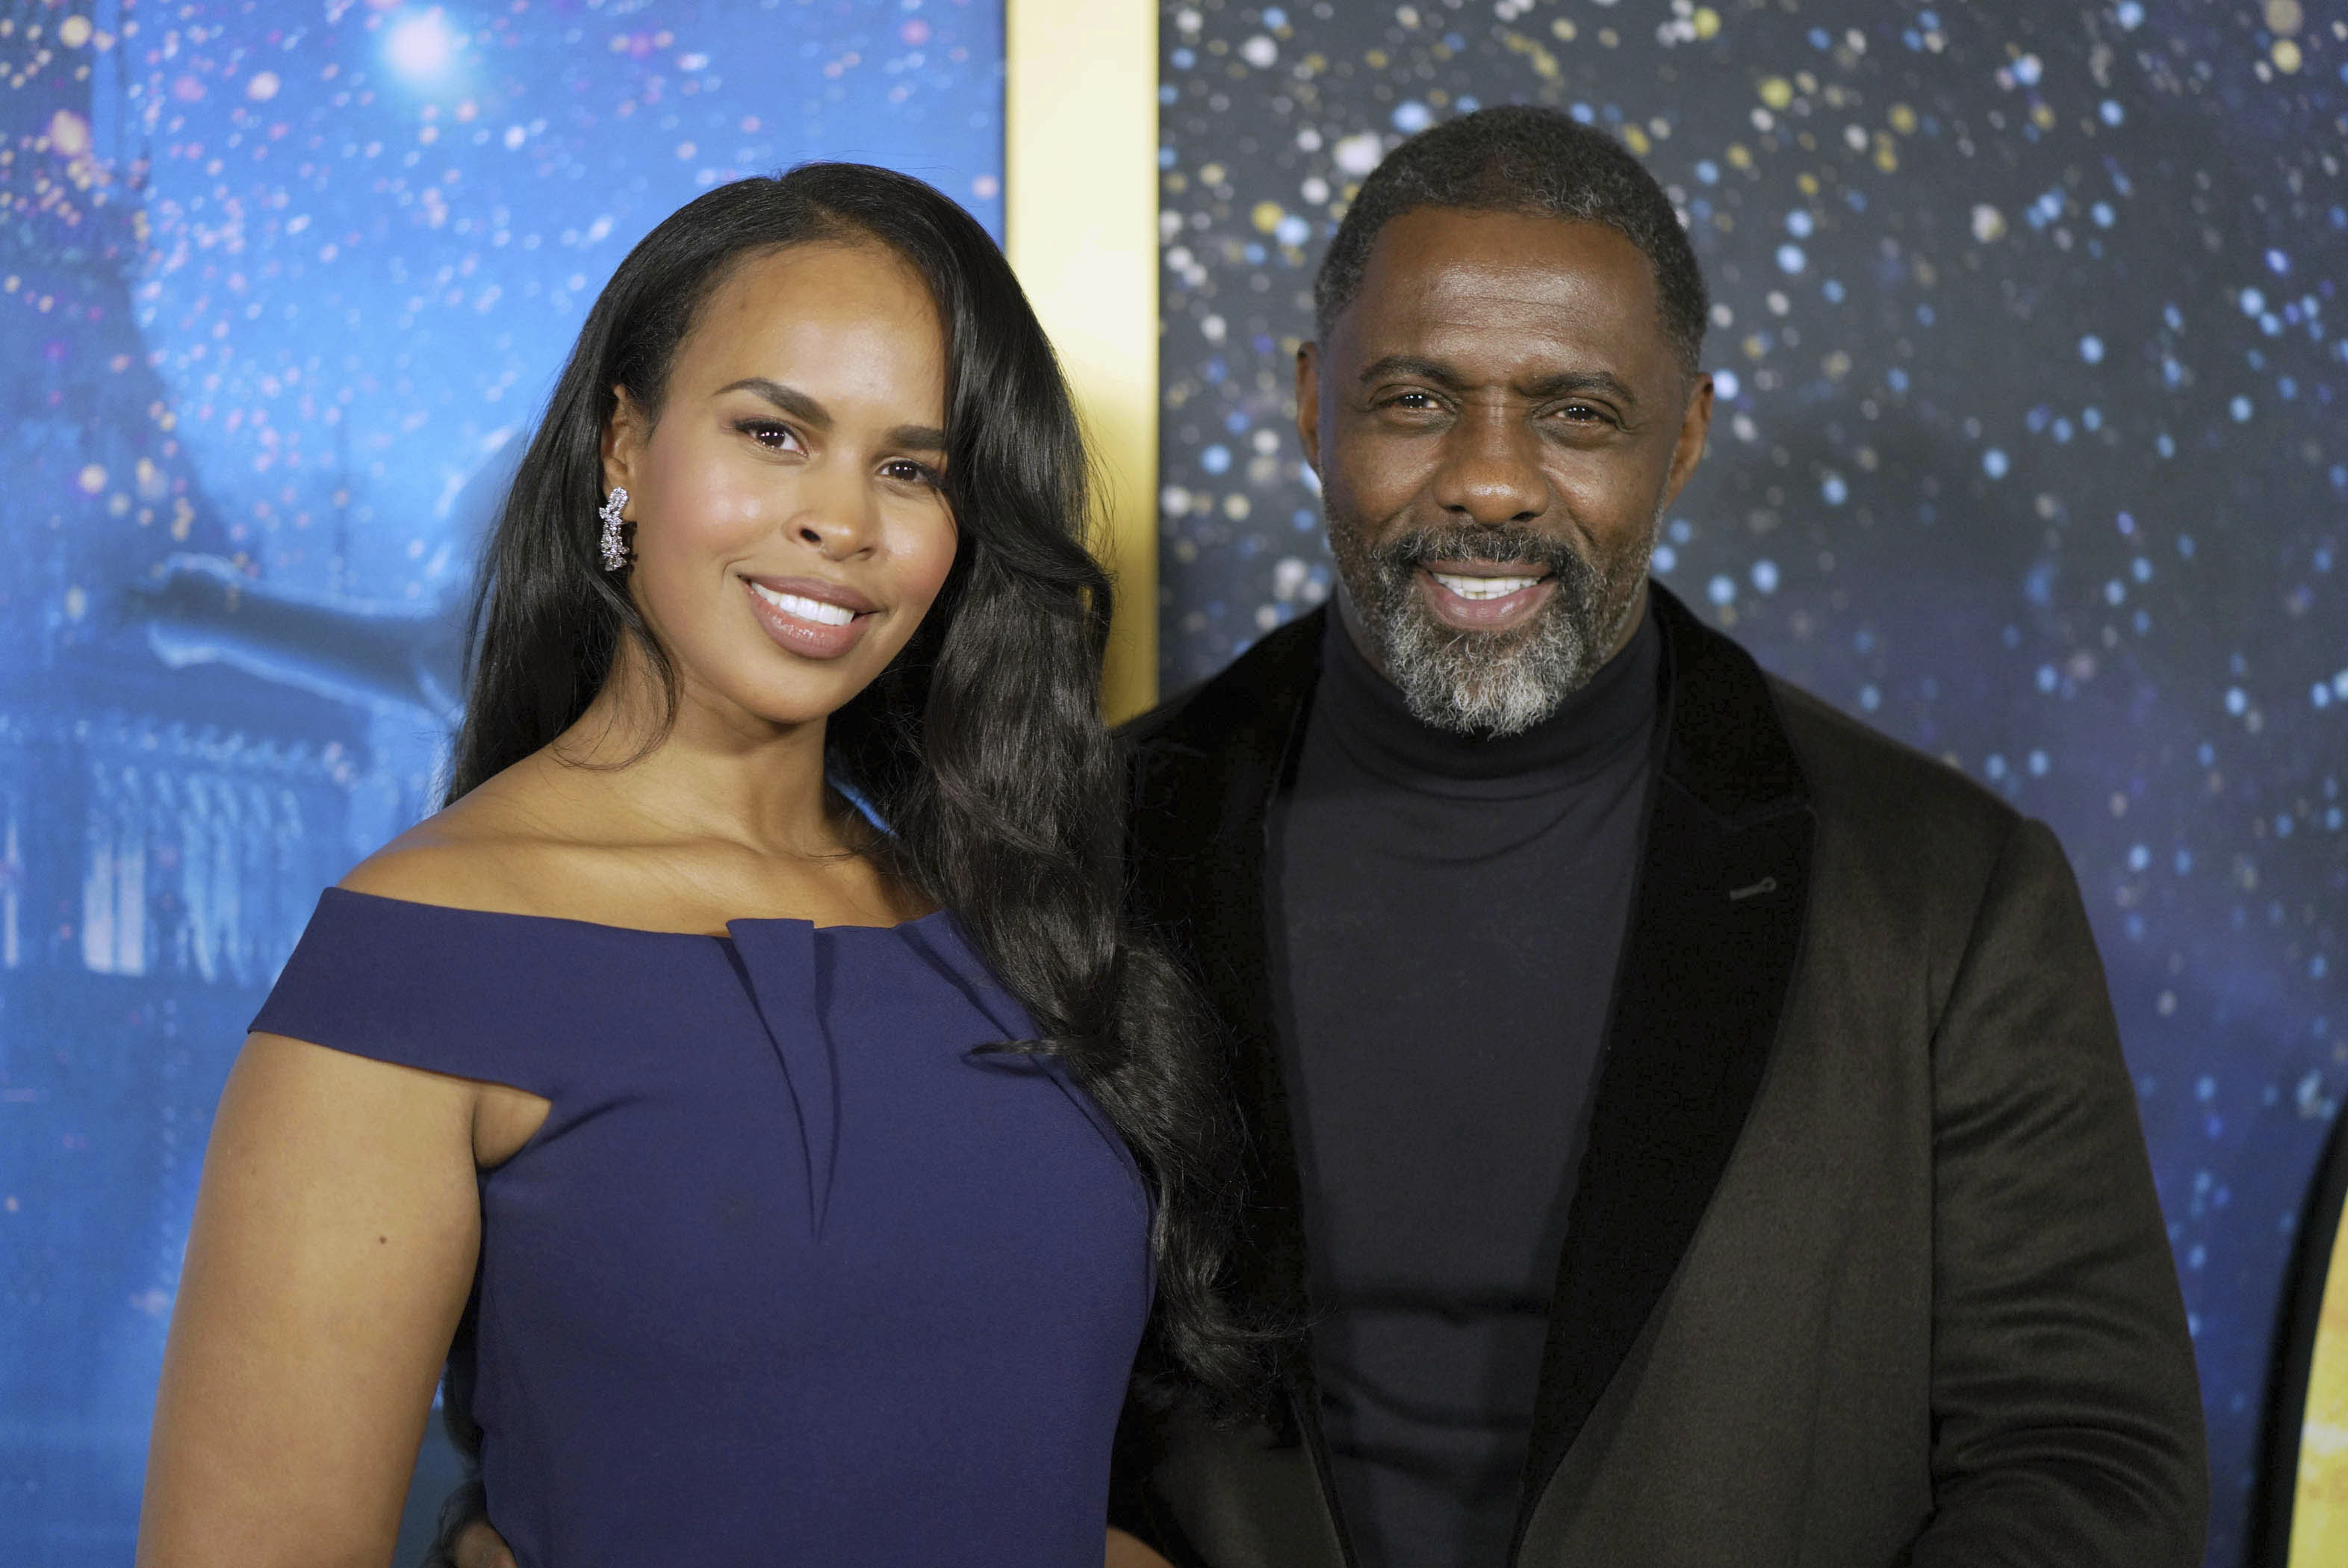 """Photo by: zz/John Nacion/STAR MAX/IPx 2019 12/16/19 Sabrina Dhowre Elba and Idris Elba at the world premiere of """"Cats"""" held at Alice Tully Hall, Lincoln Center on December 16, 2019 in New York City. (NYC)"""